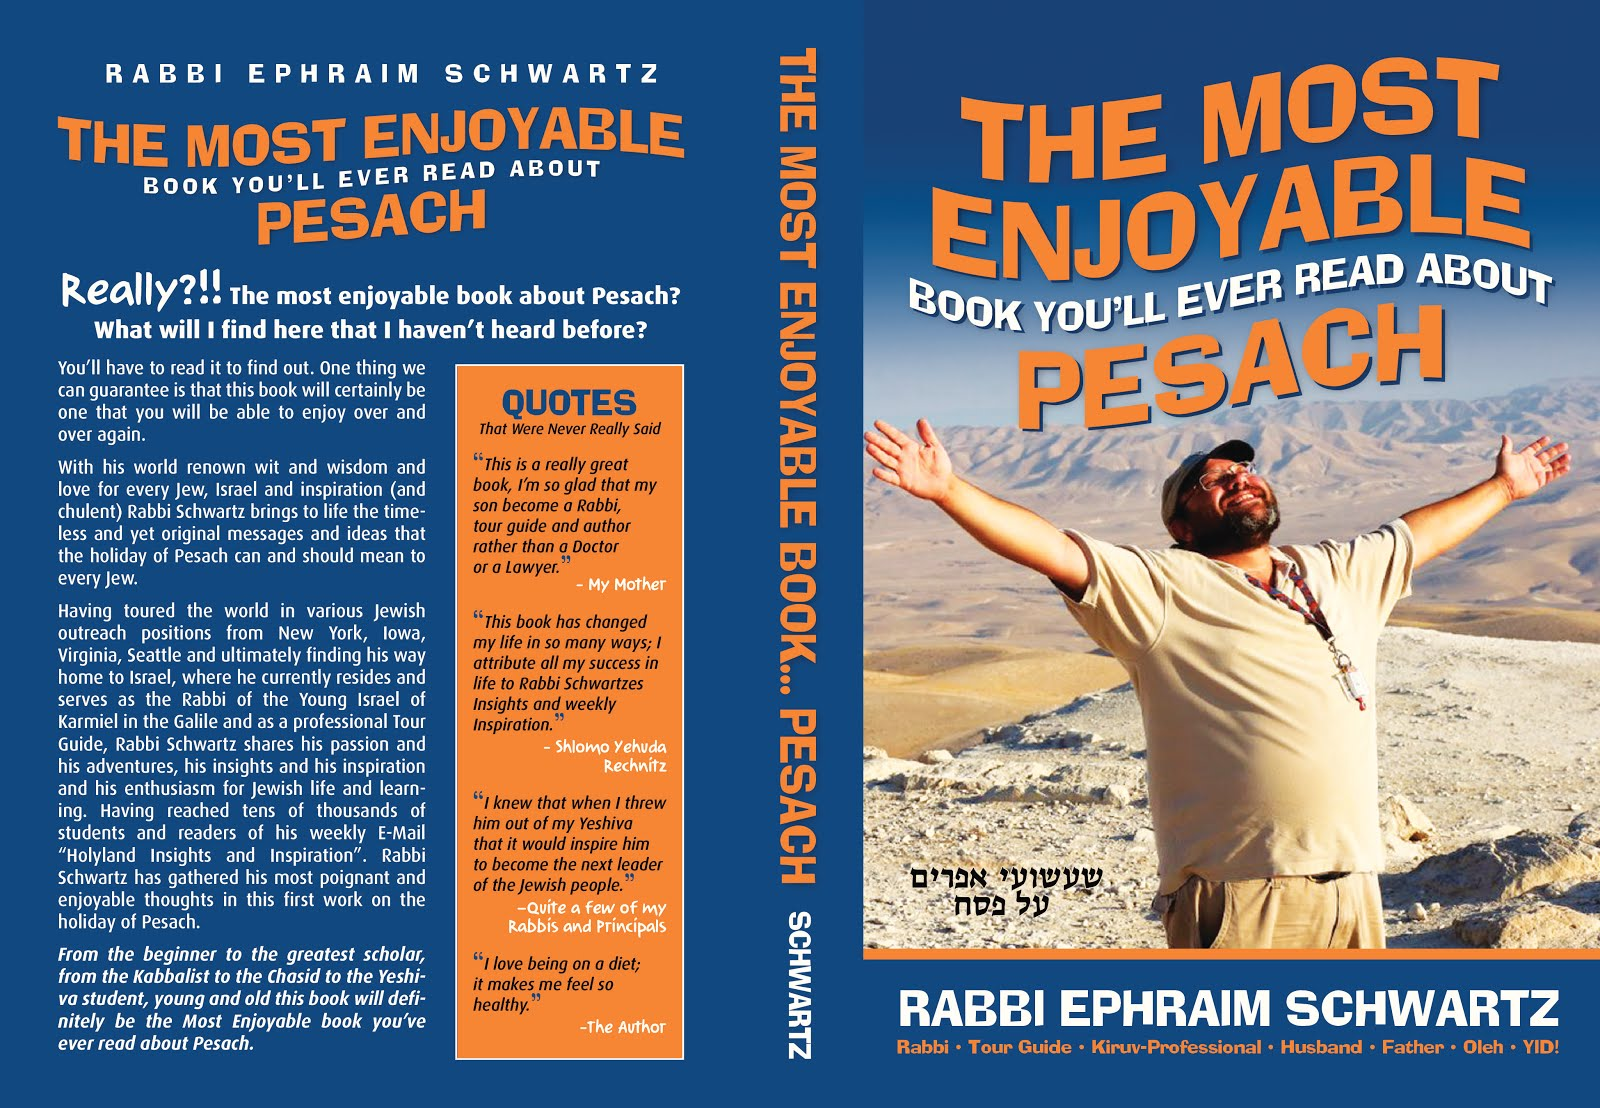 Rabbi Schwartz's Most Enjoyable Pesach Book